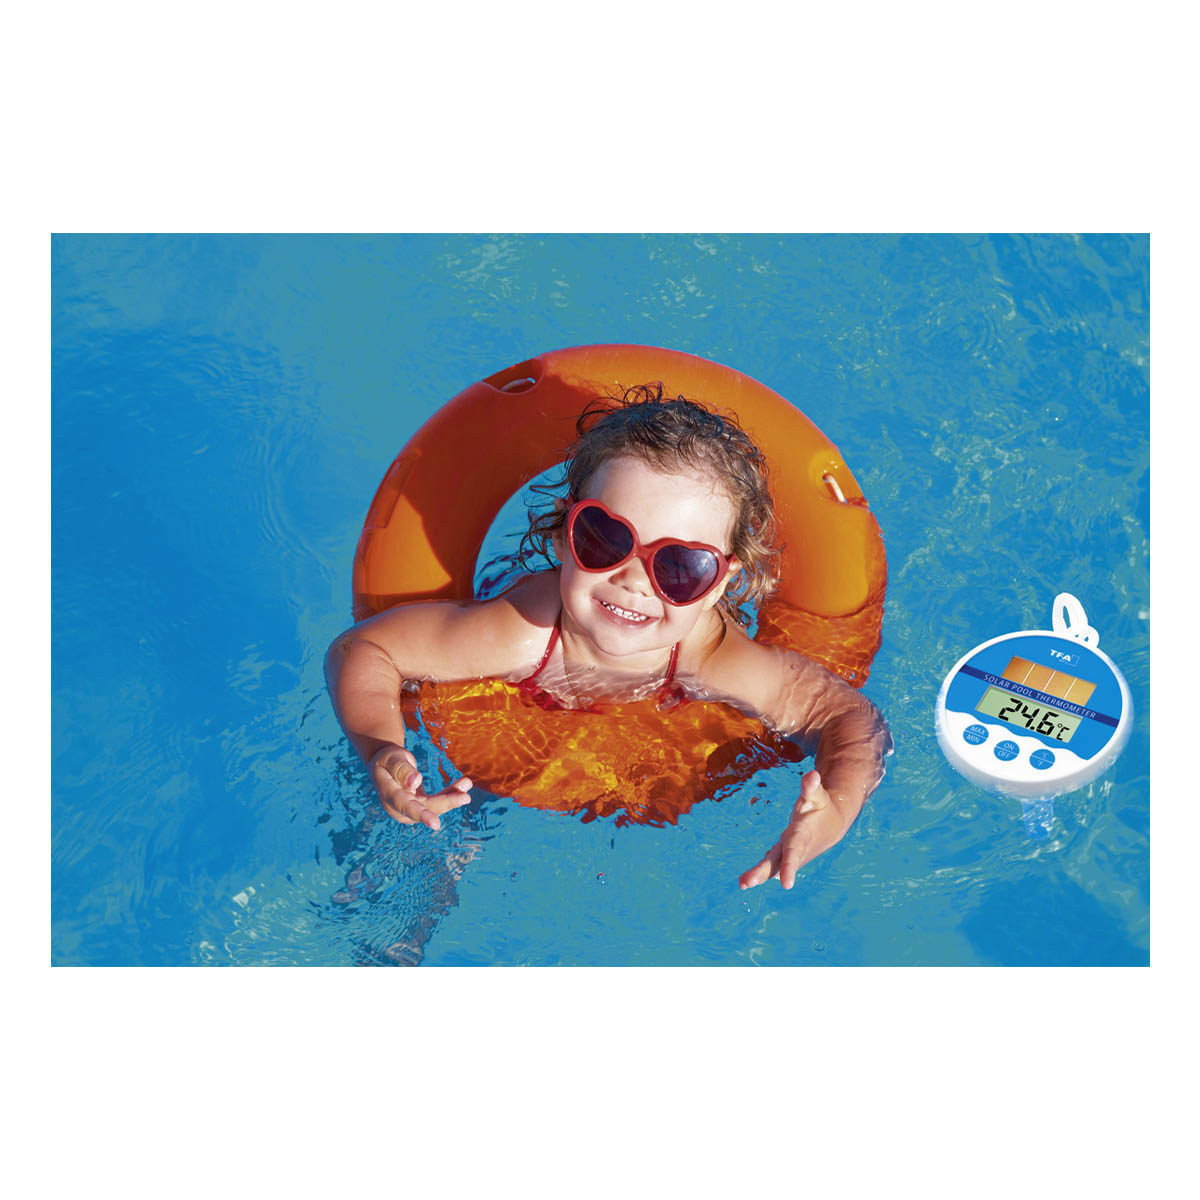 30-1041-digitales-solar-poolthermometer-anwendung-1200x1200px.jpg